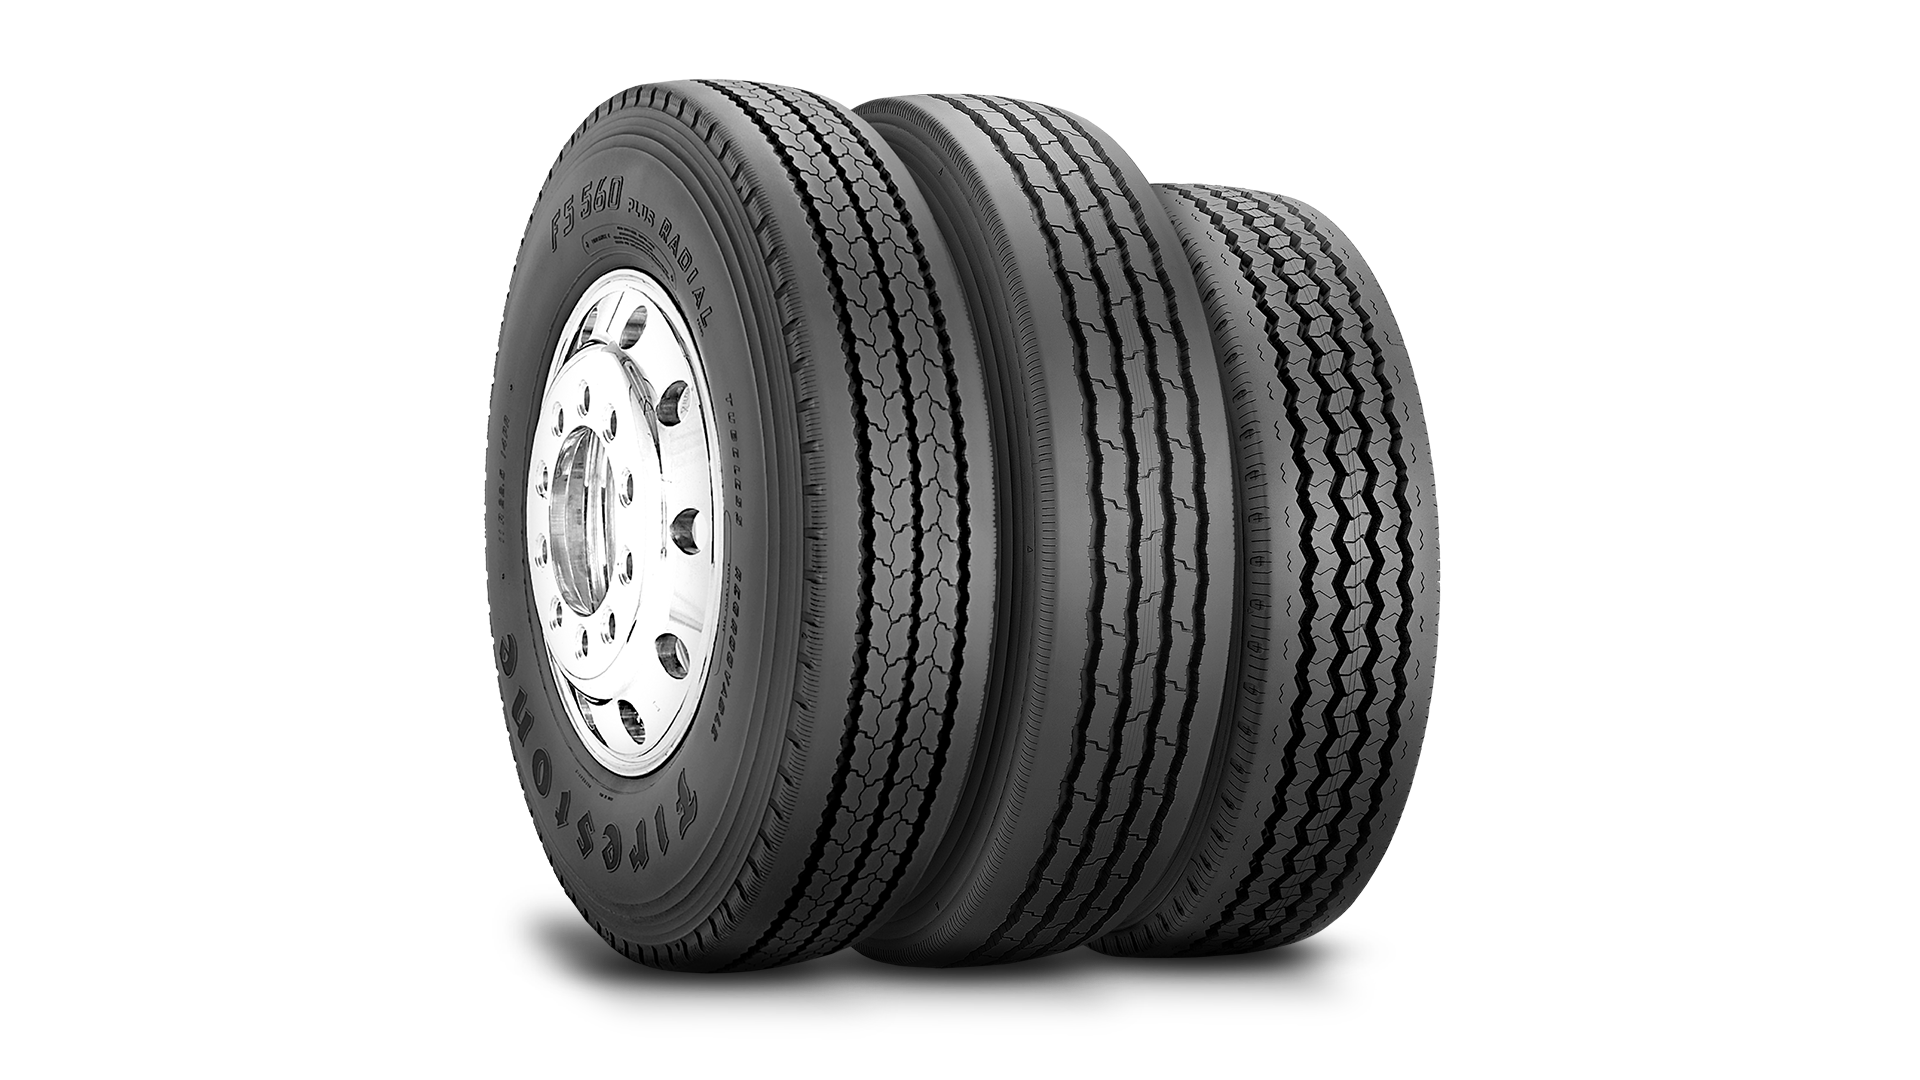 Firestone Tires Near Me >> Fs560 Plus Tire 11r22 5 Commercial Truck Tire Firestone